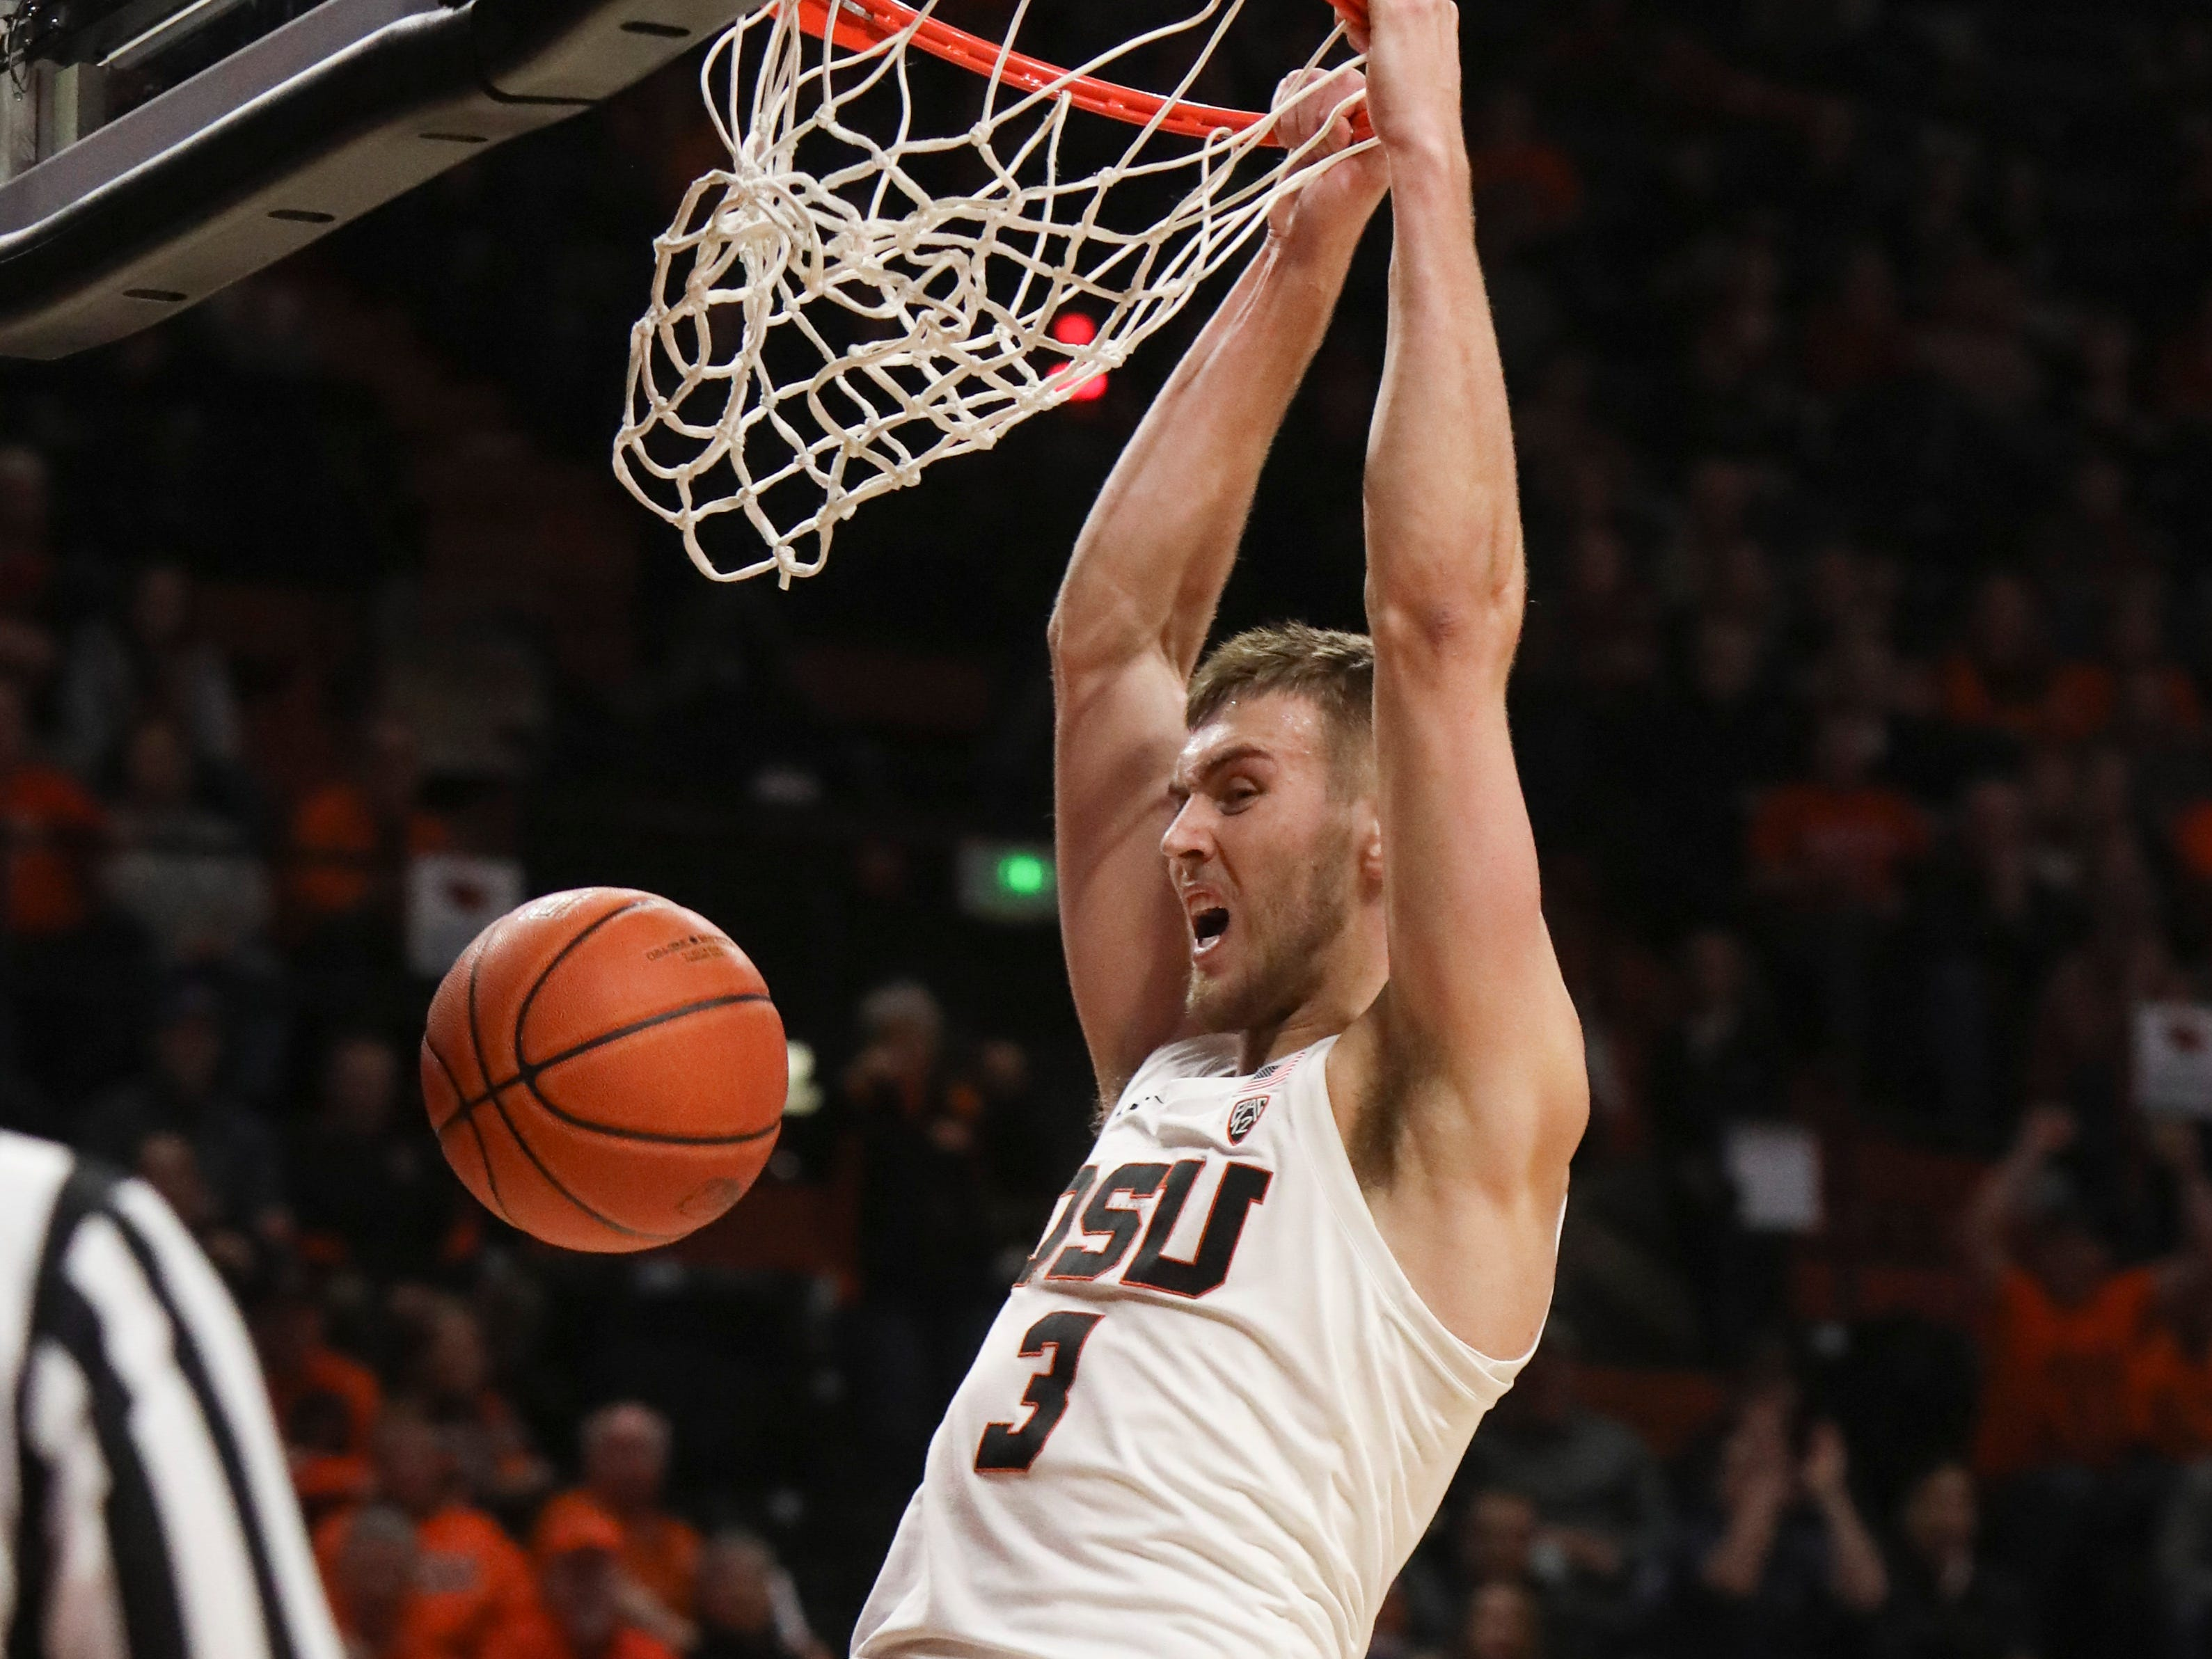 Oregon State's Tres Tinkle (3) dunks during the second half of an NCAA college basketball game against Arizona in Corvallis, Ore., Thursday, Feb. 28, 2019. Arizona won 74-72.